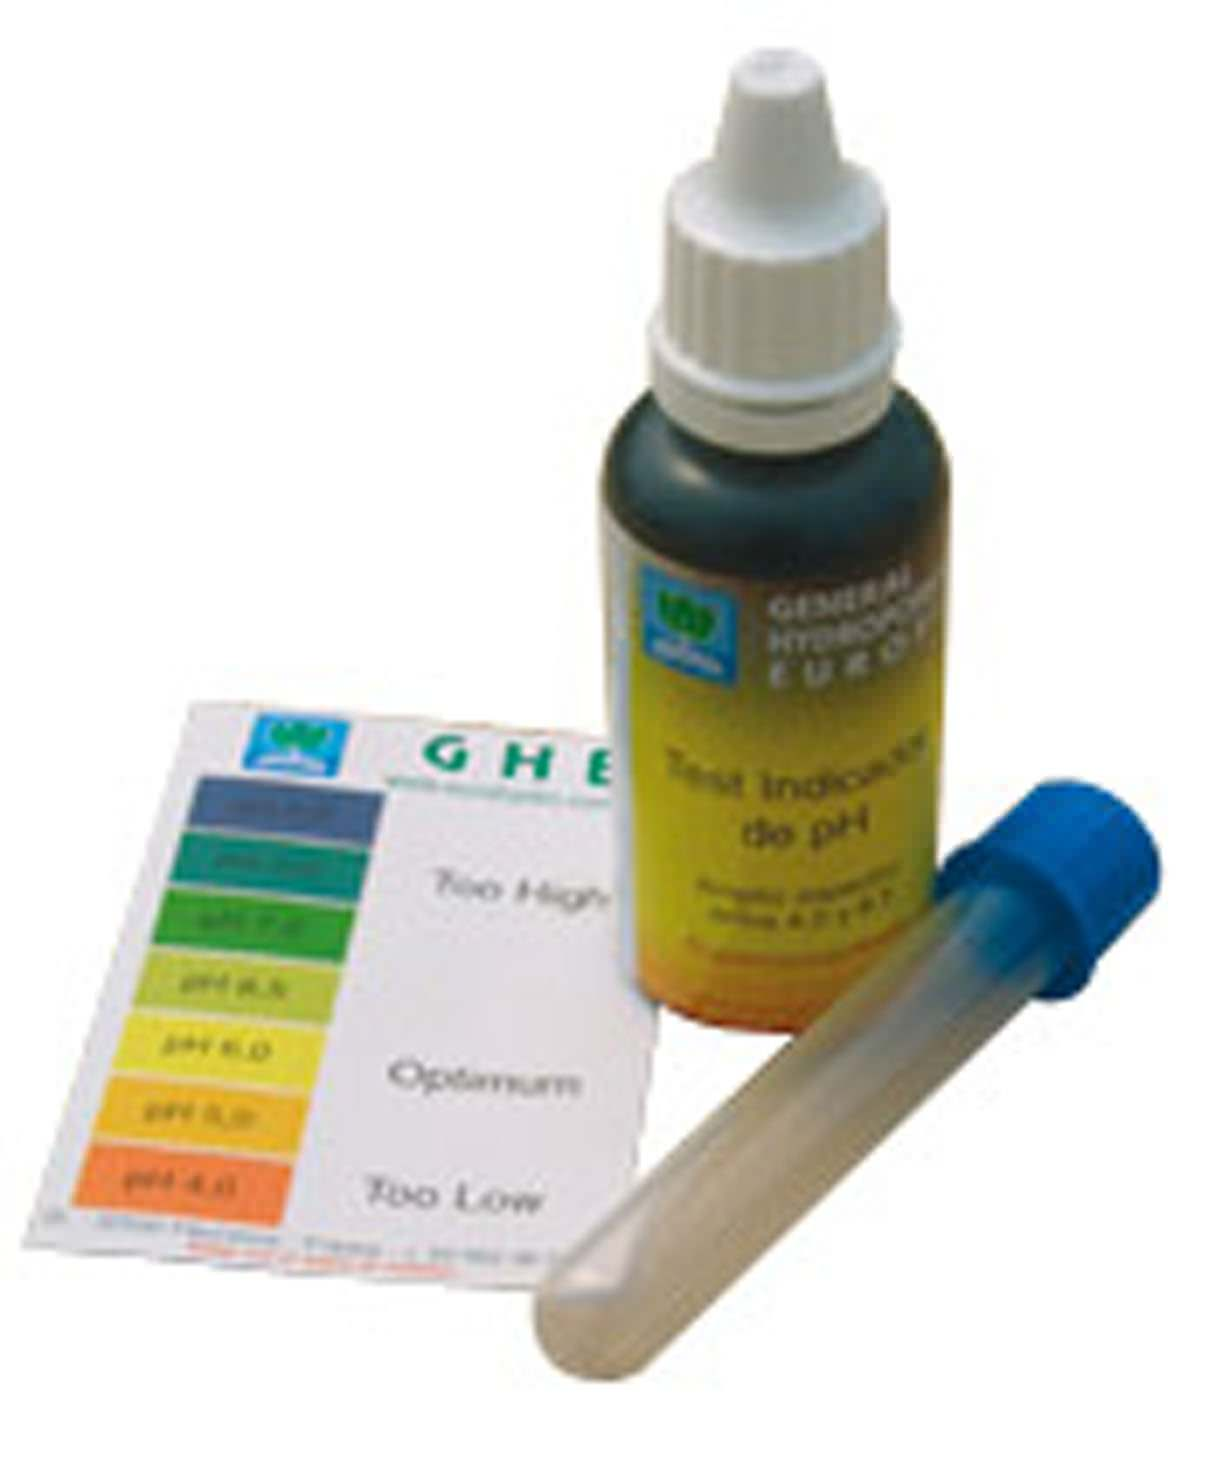 ghe ph test kit dosage et mesures testeur de ph growshop terre hydro culture. Black Bedroom Furniture Sets. Home Design Ideas